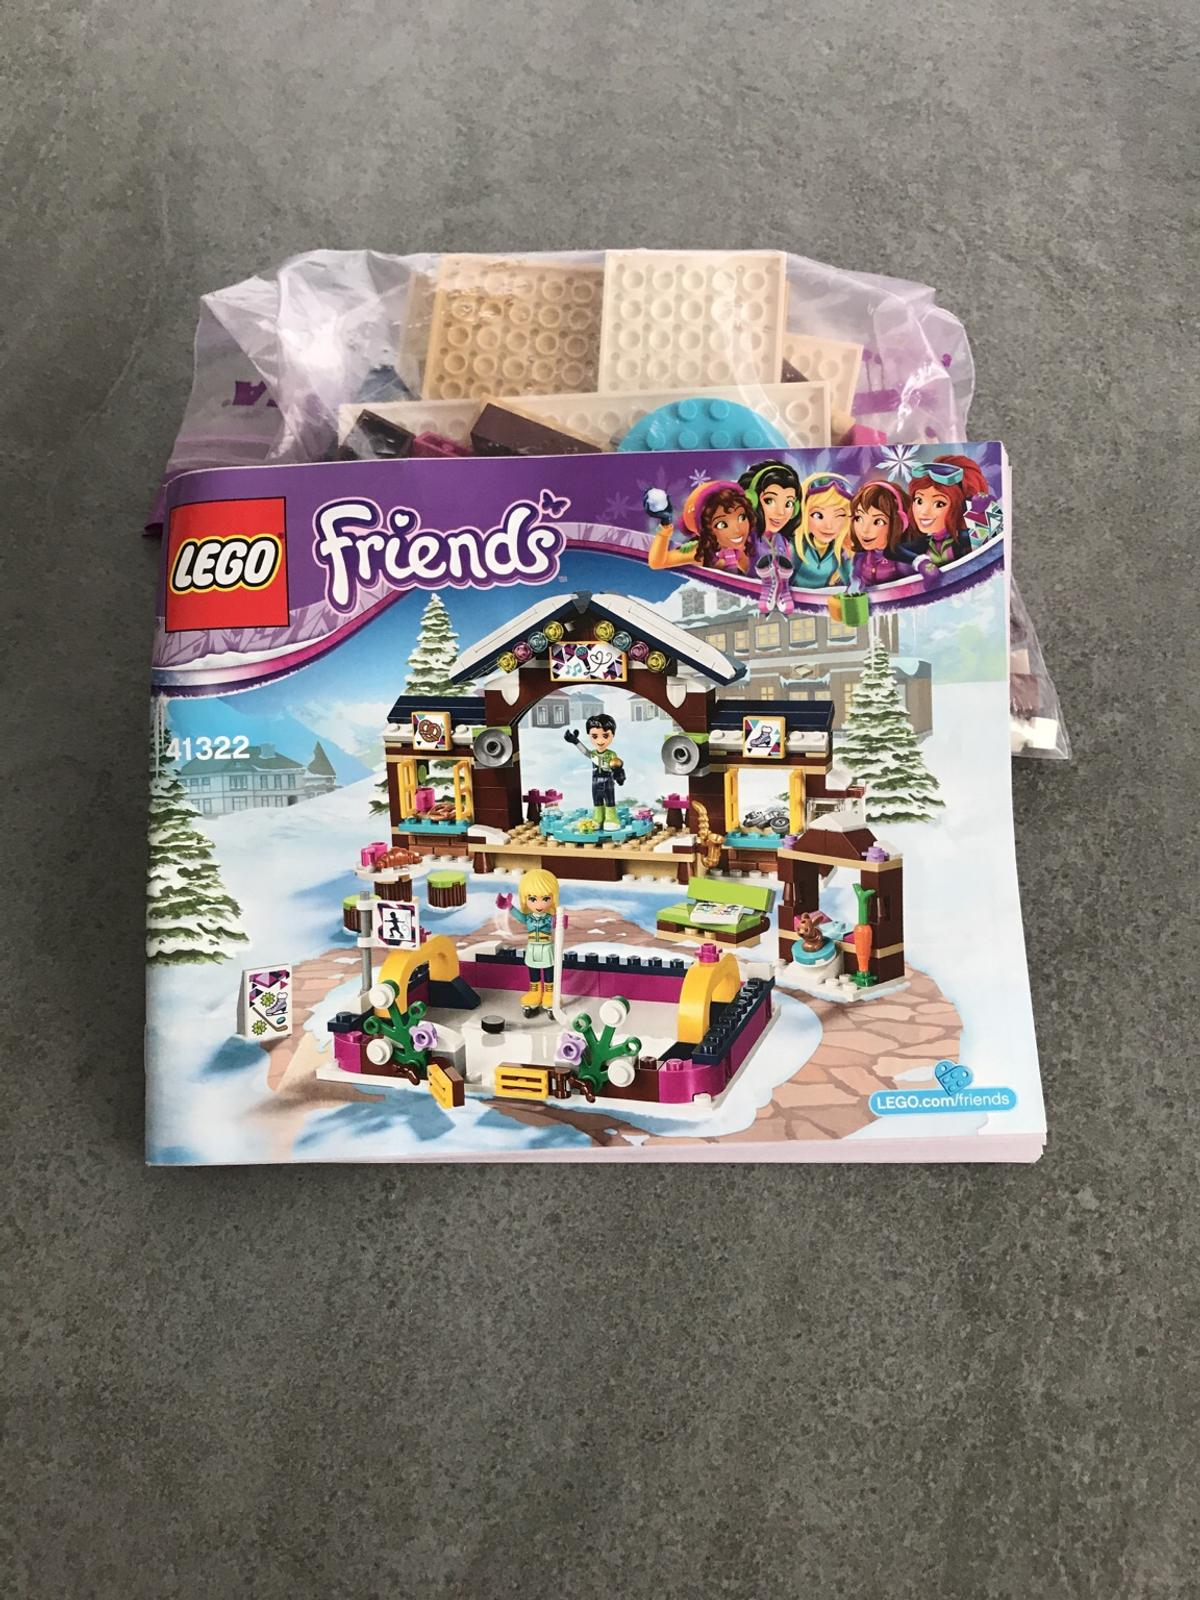 Not in original box. Comes complete with instructions.